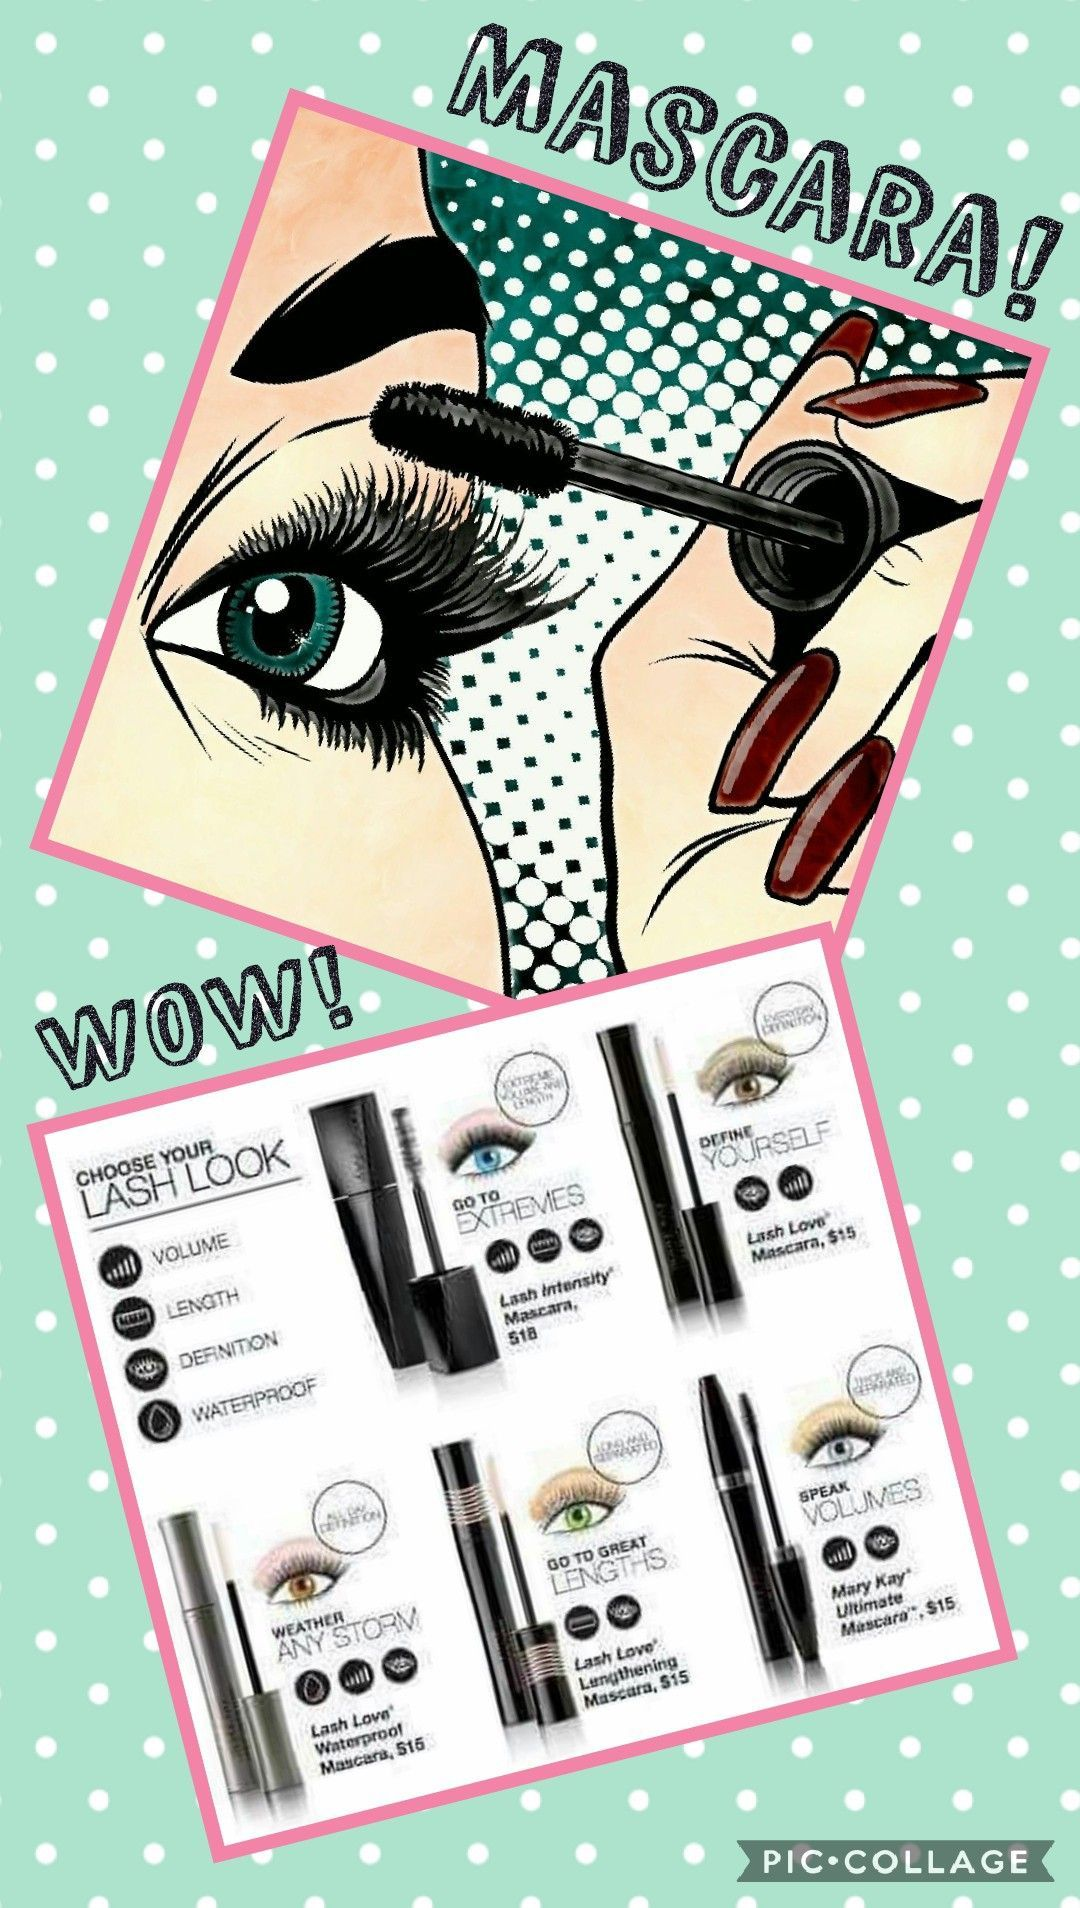 Pin by Elizabeth Mullins on Mary Kay in 2020 | Mary kay